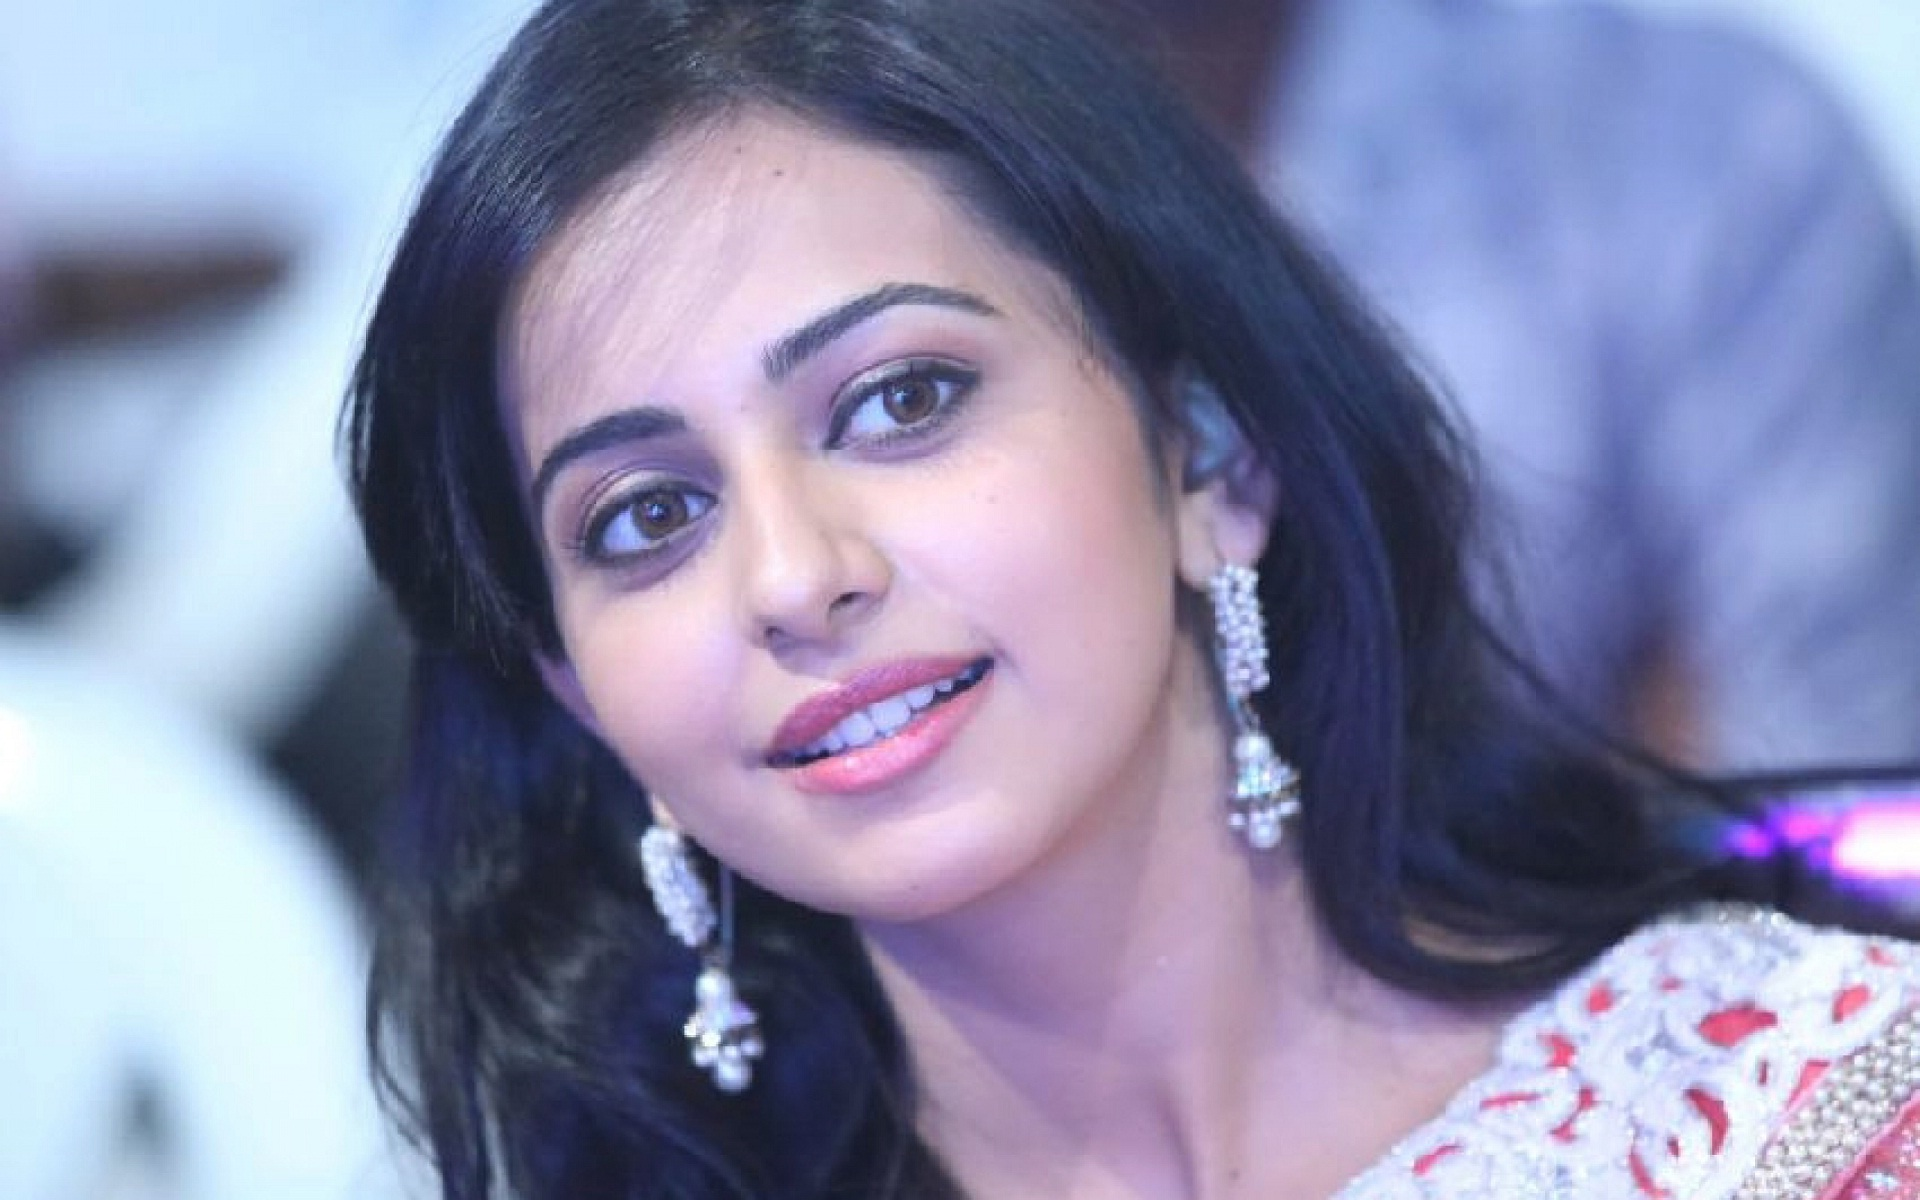 hd rakul preet singh cute smile still background free mobile desktop wallpaper